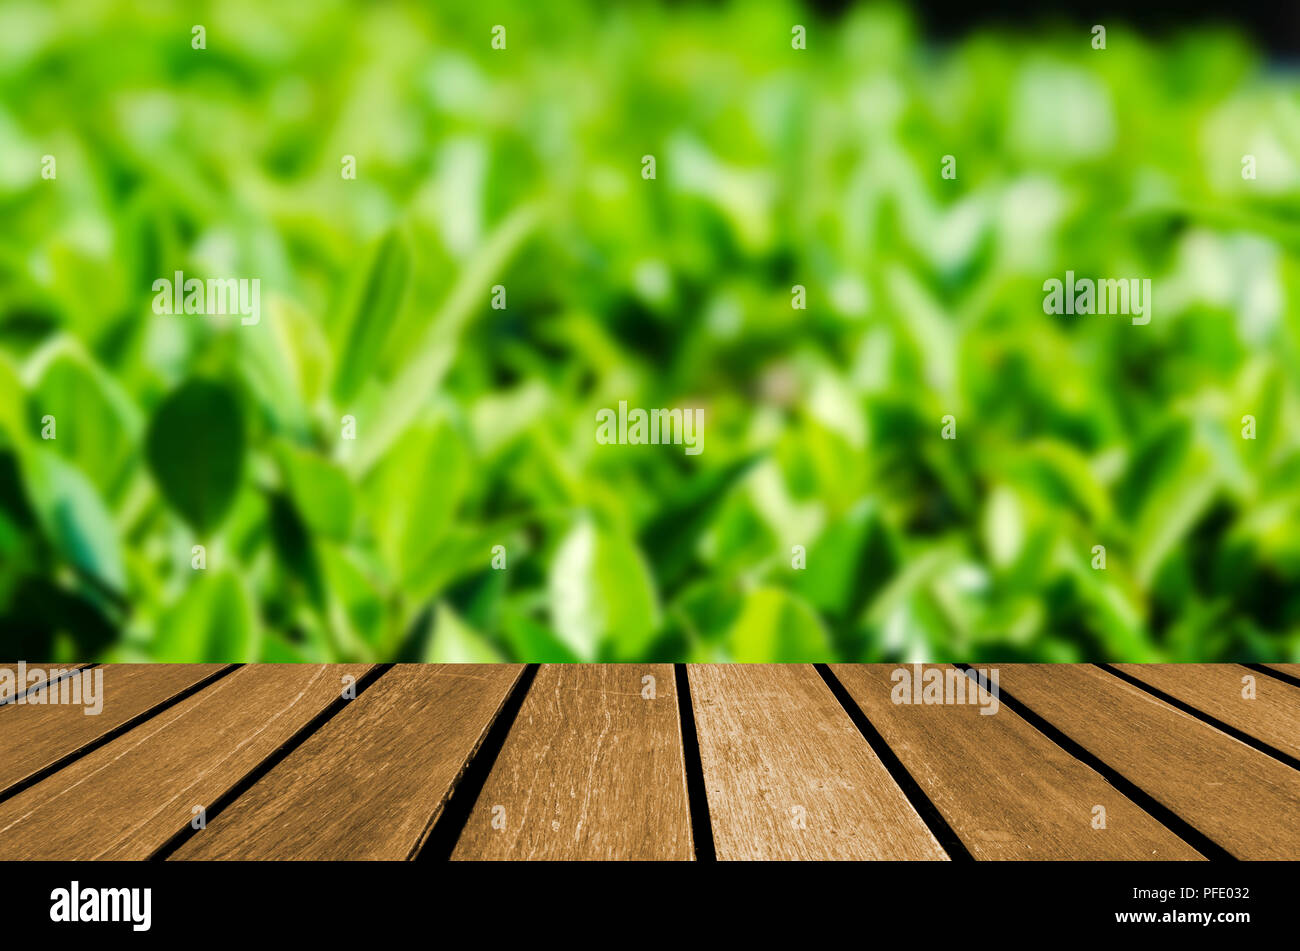 Wood Table Top And Abstract Blurred Nature Green Leaf